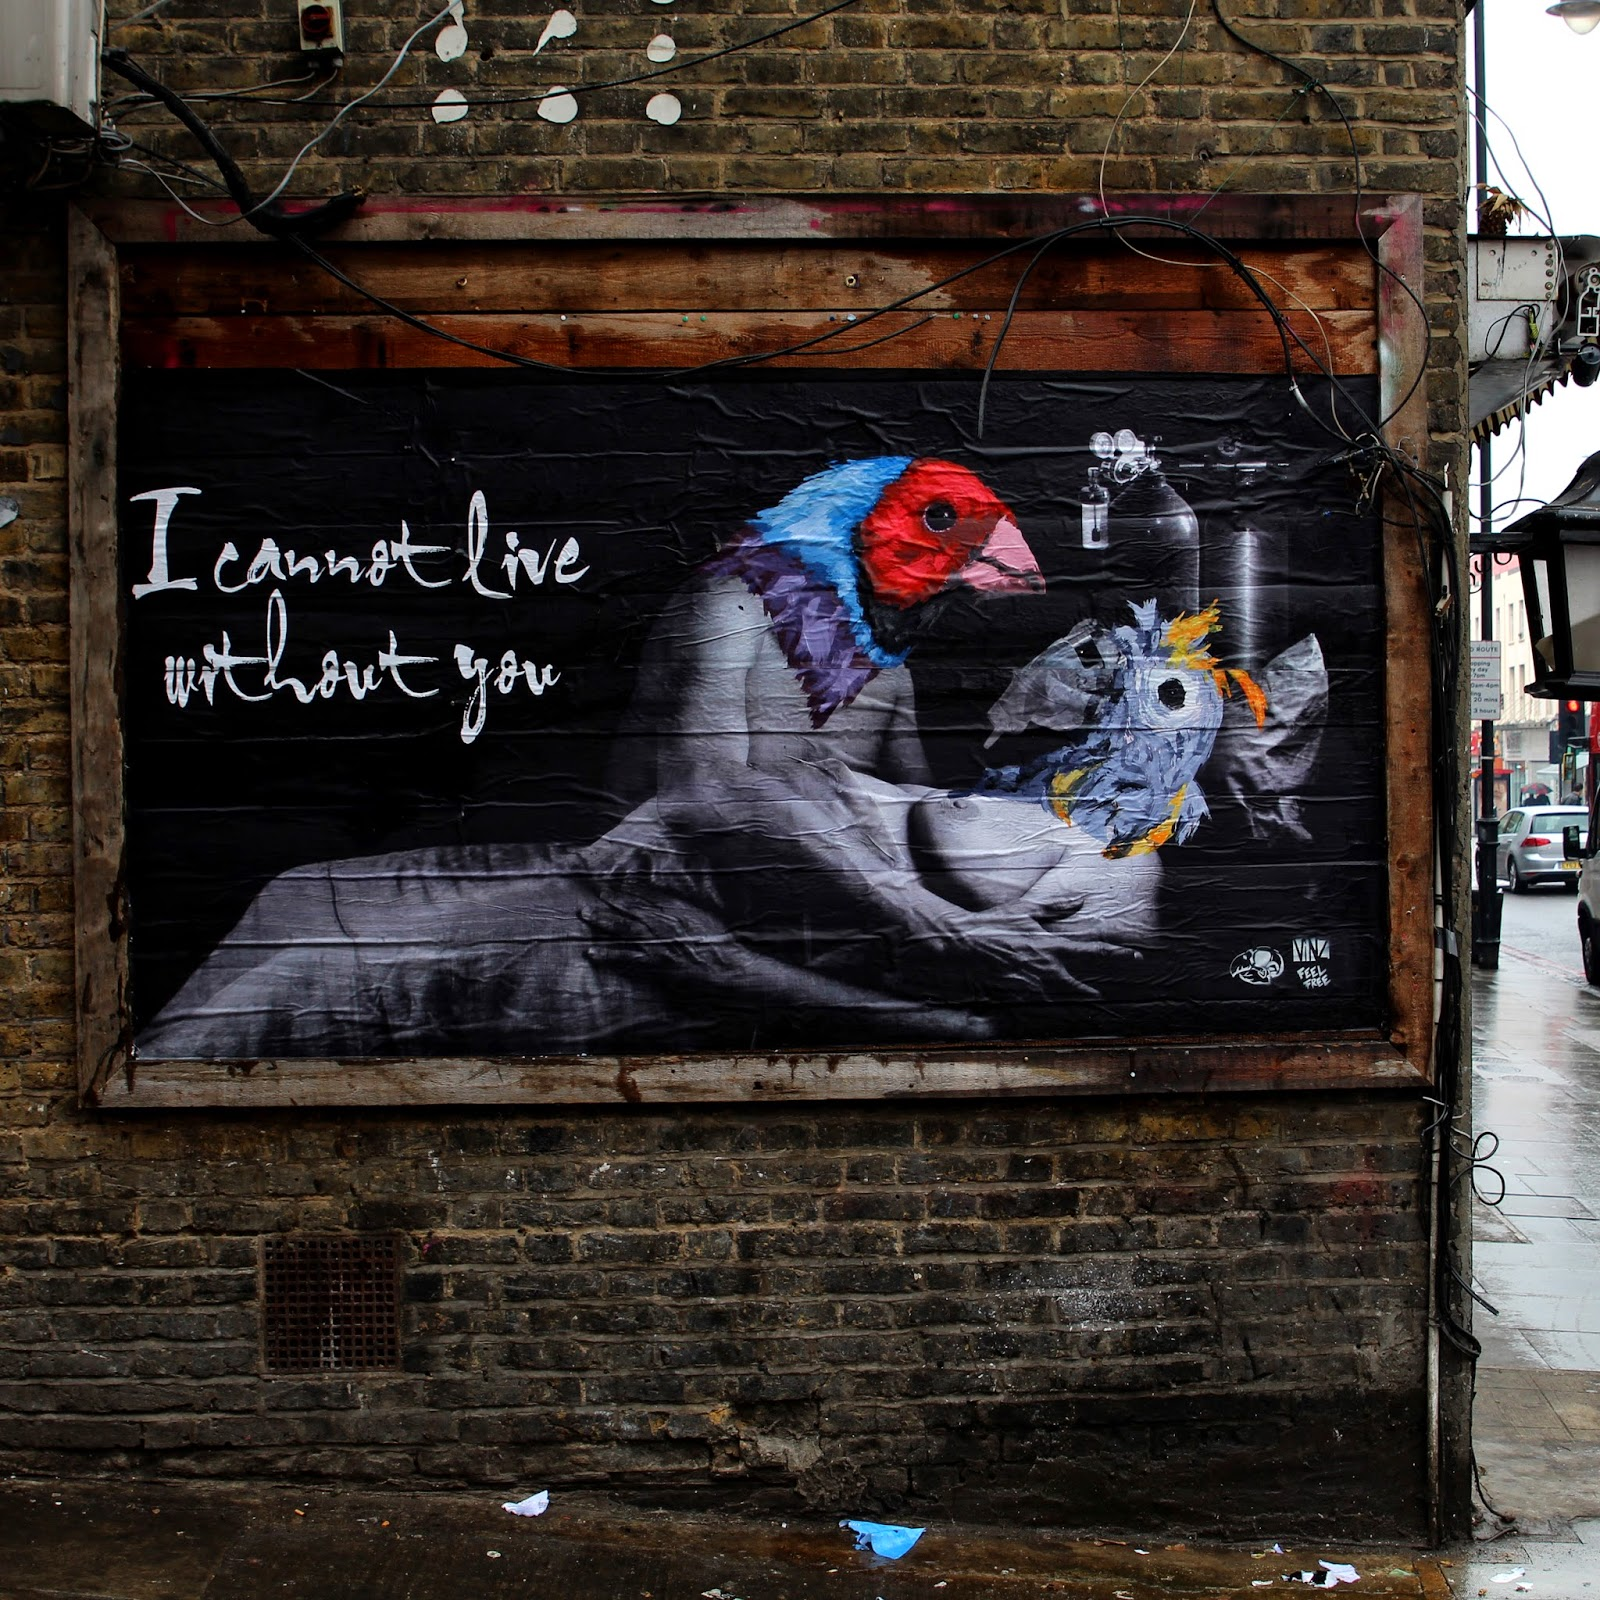 vinz-a-new-series-of-murals-in-london-04